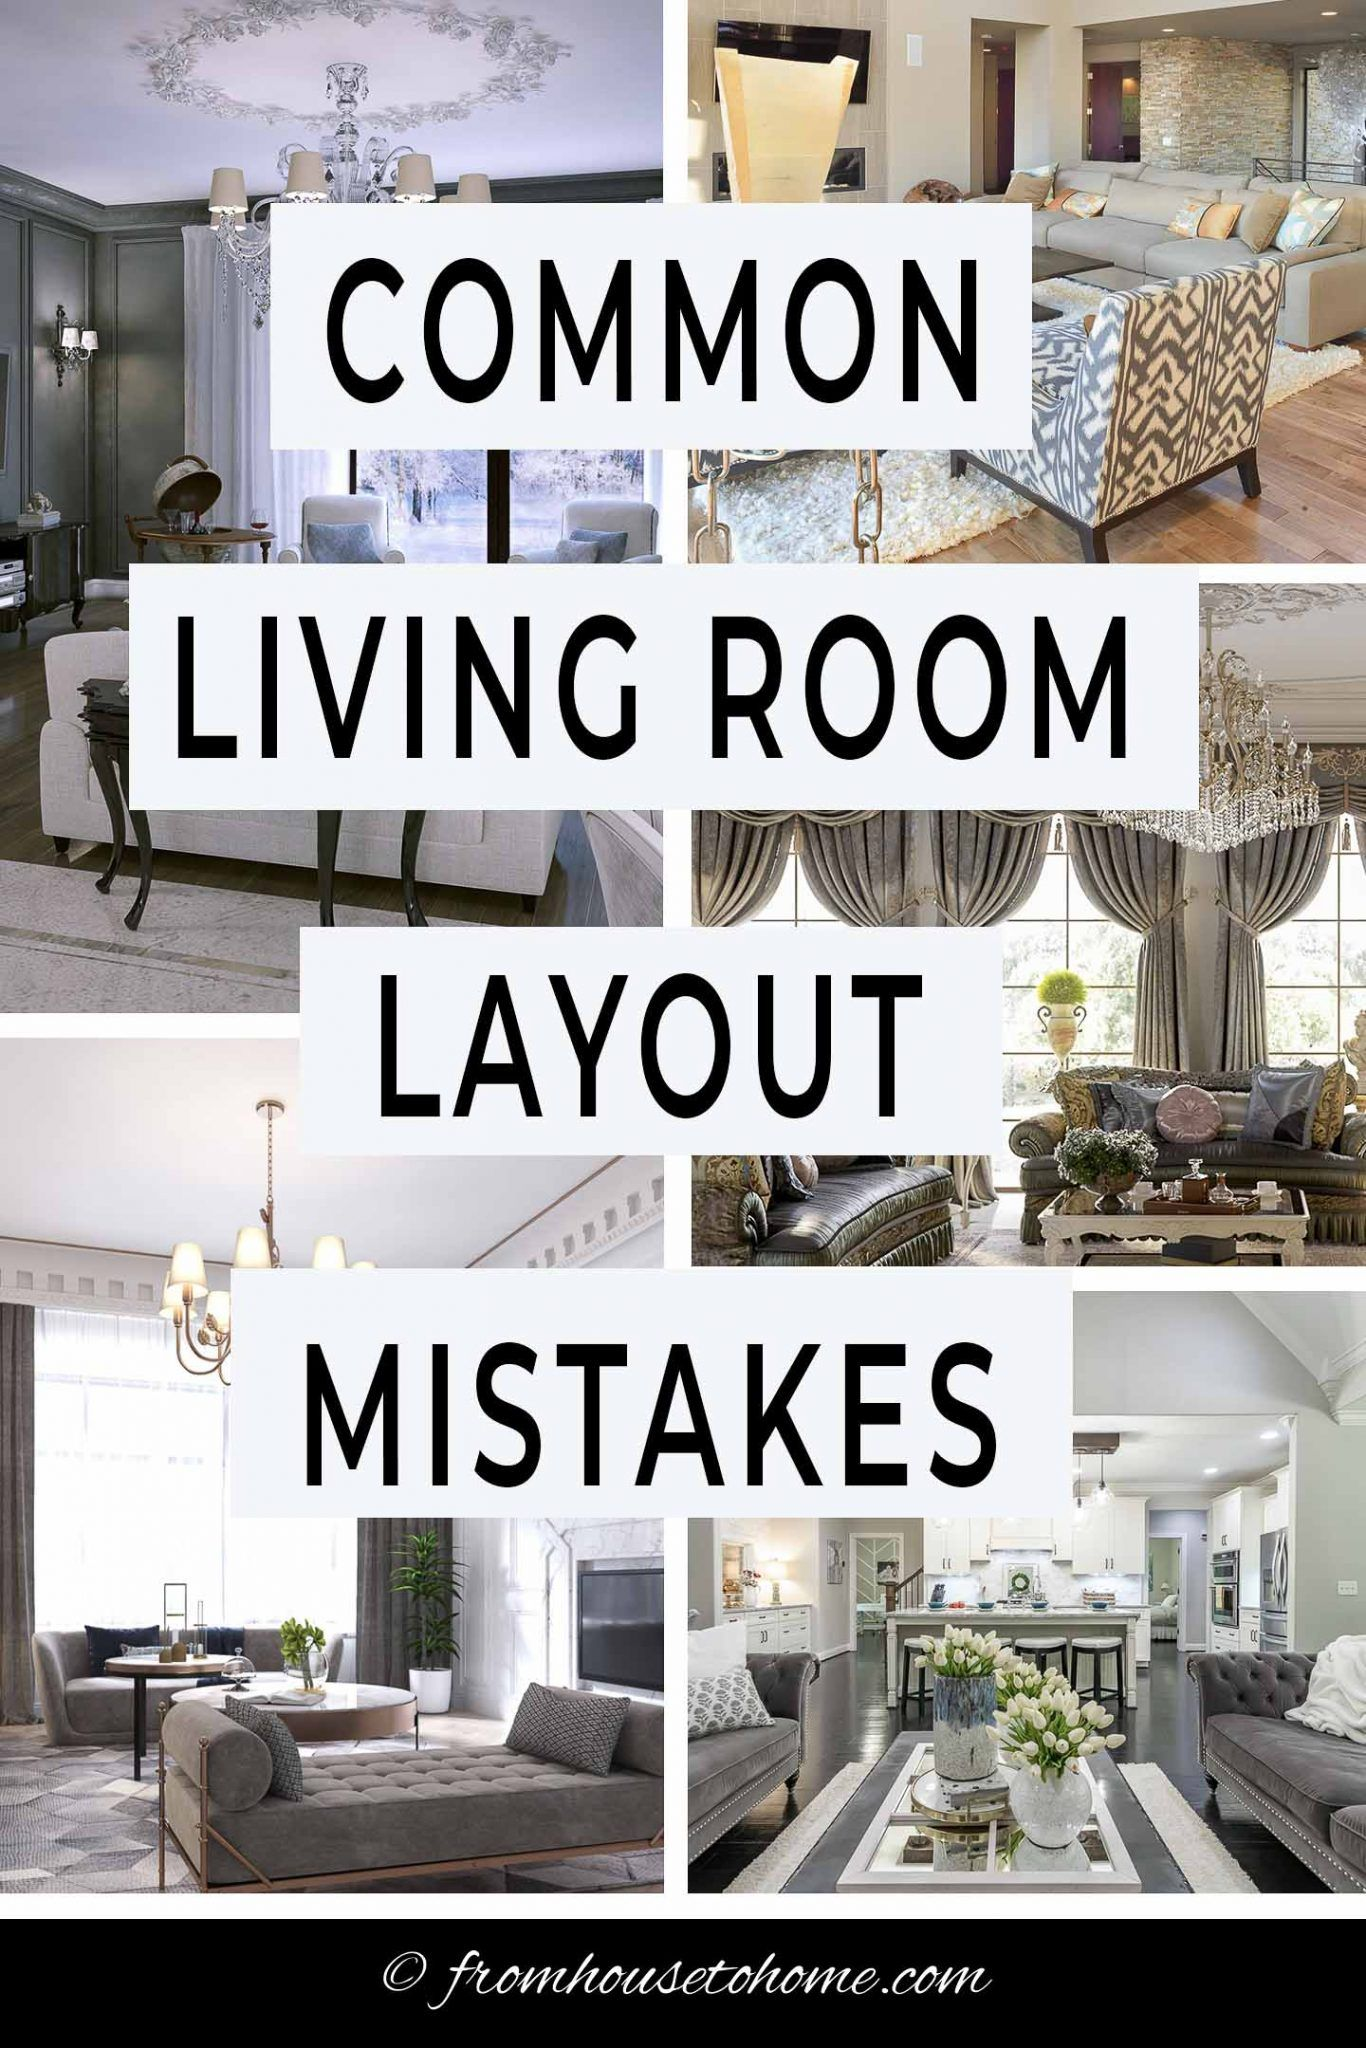 10 Common Living Room Layout Mistakes (And How To